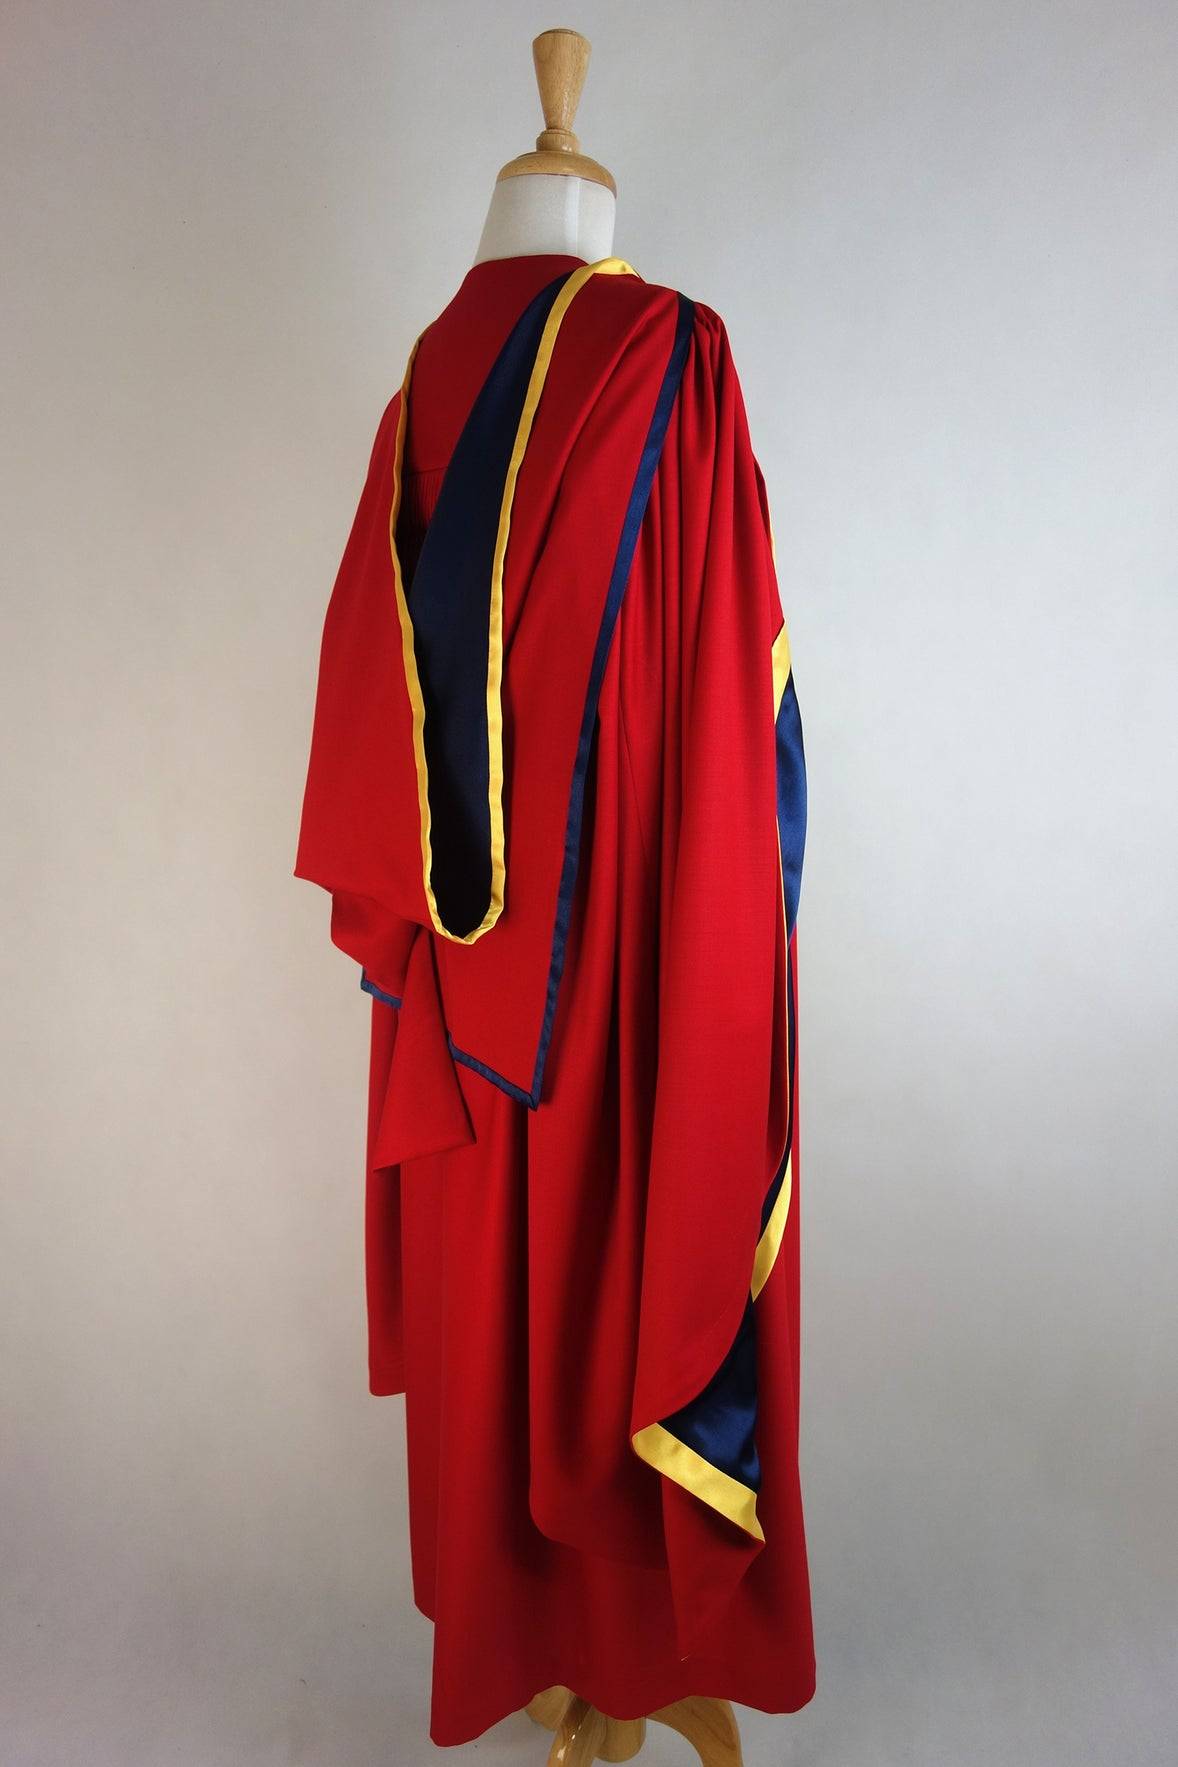 Honorary Doctoral Robe